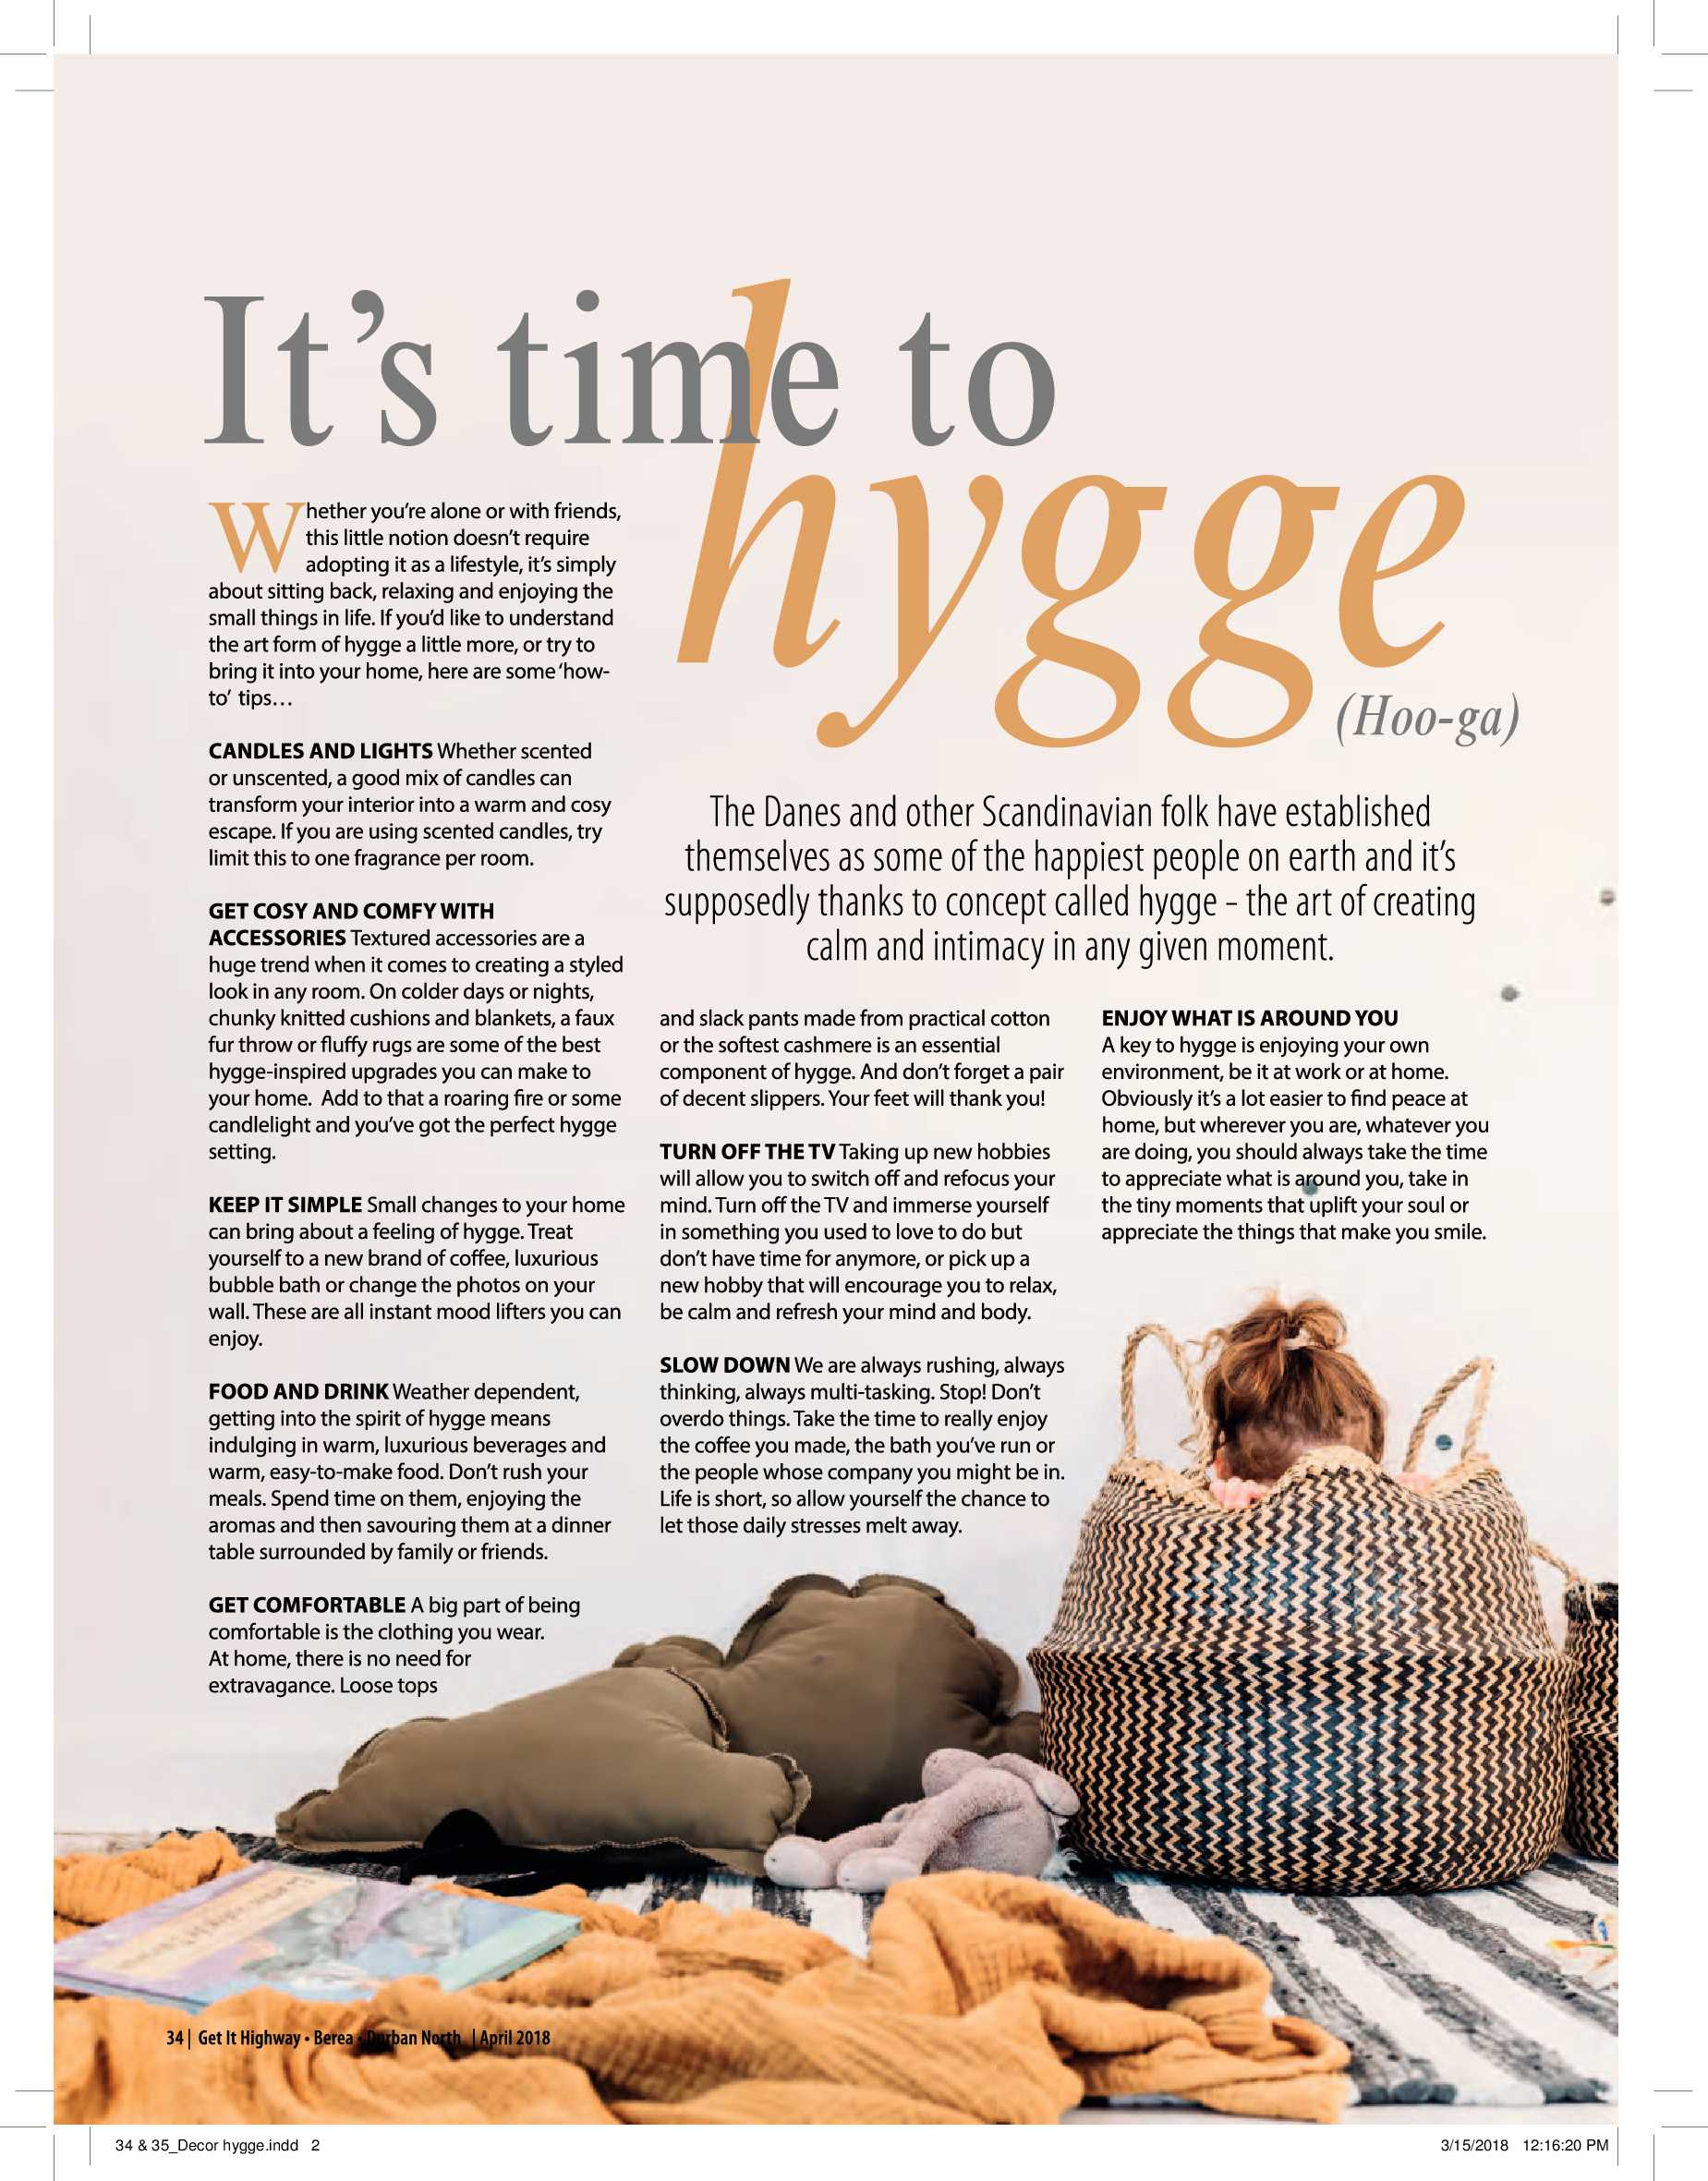 durban-get-magazine-april-2018-epapers-page-38